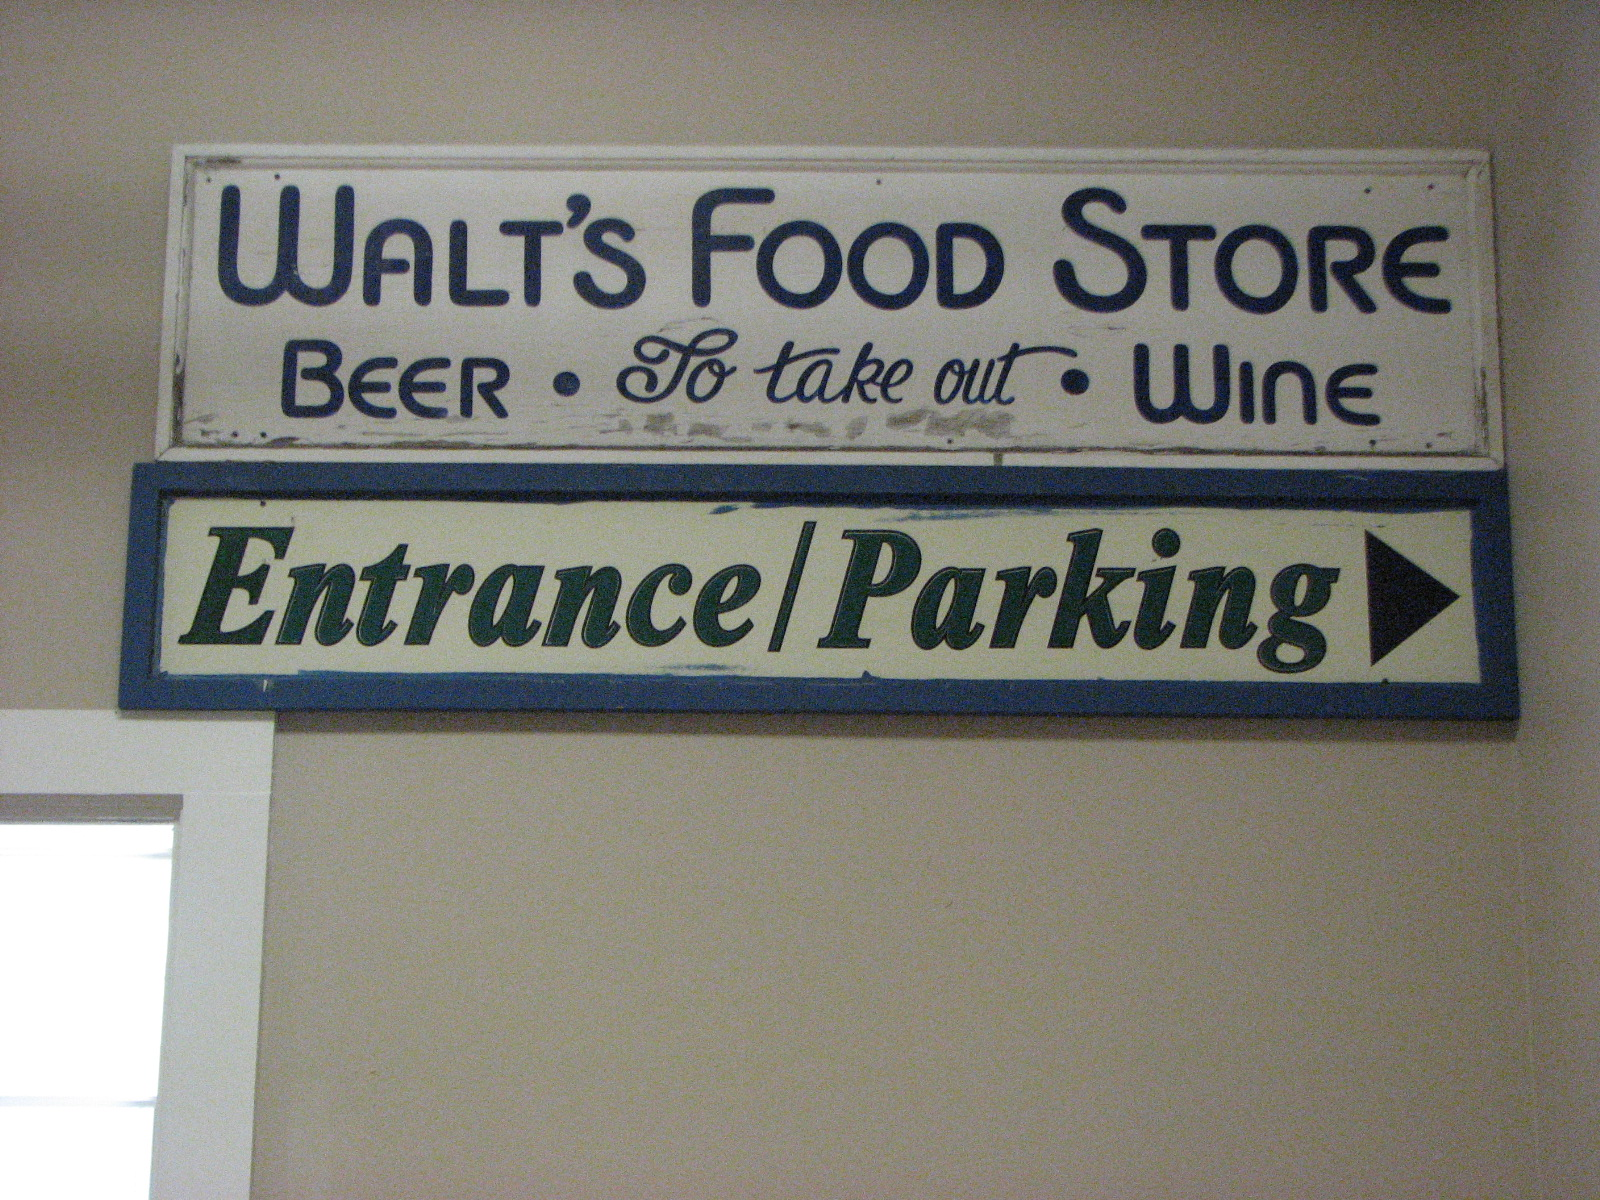 Entrance/Parking Sign